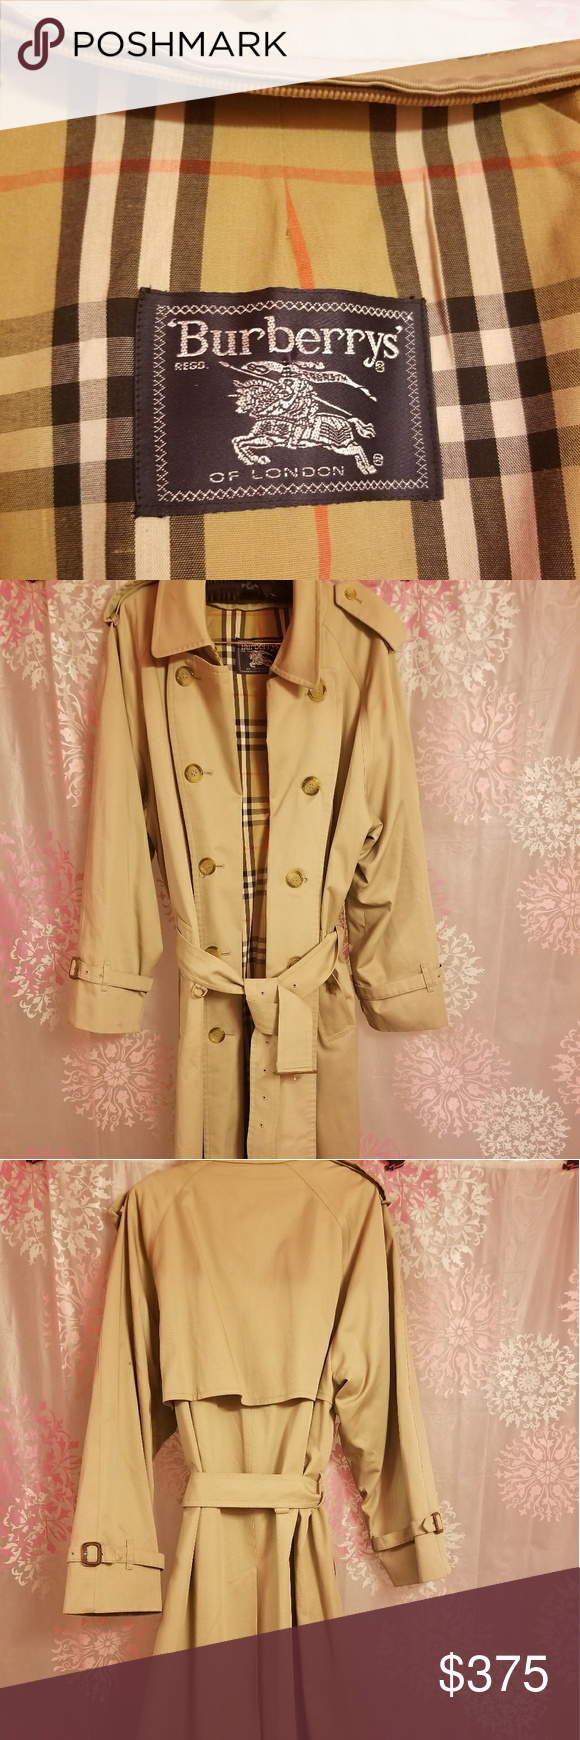 Burberry Trench Coat Flash Sale Burberry Trench Coat Burberry Trench Trench Coat